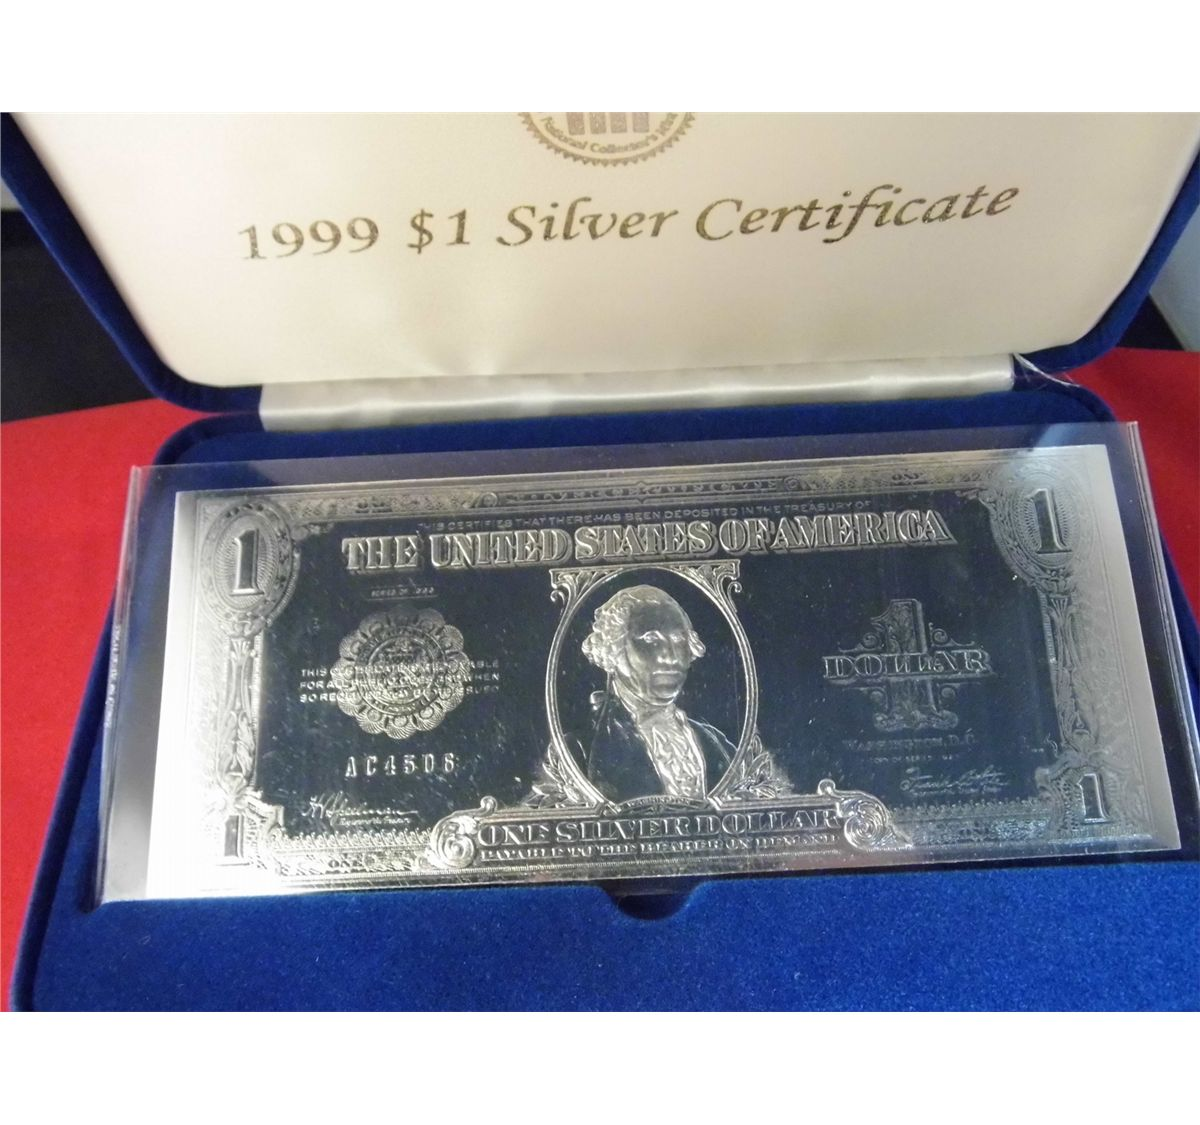 National Collectors Mint 1999 1 Silver Certificate Note